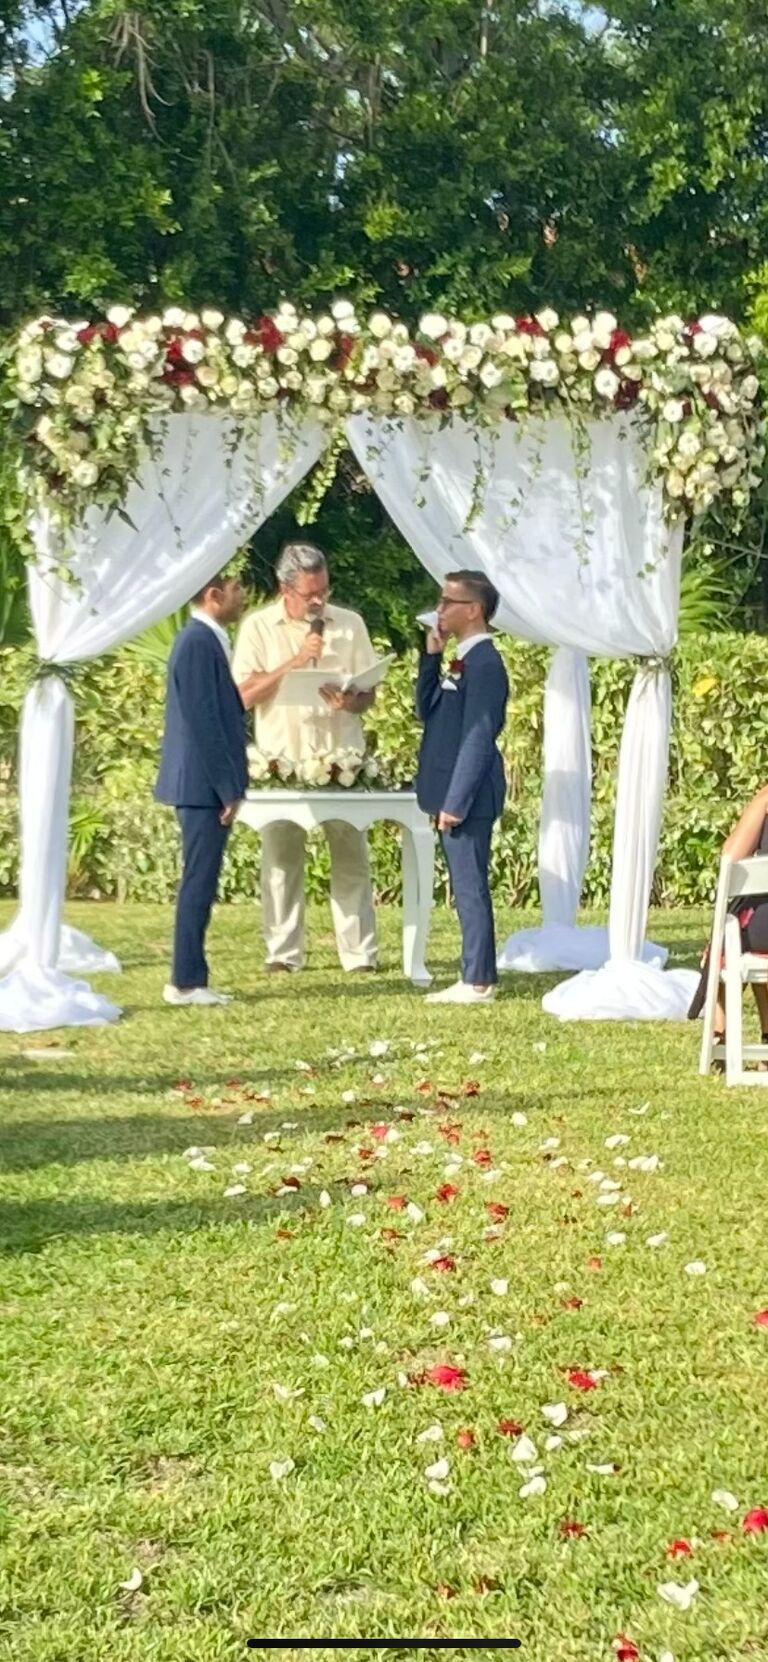 Matt and Manny tied the knot!